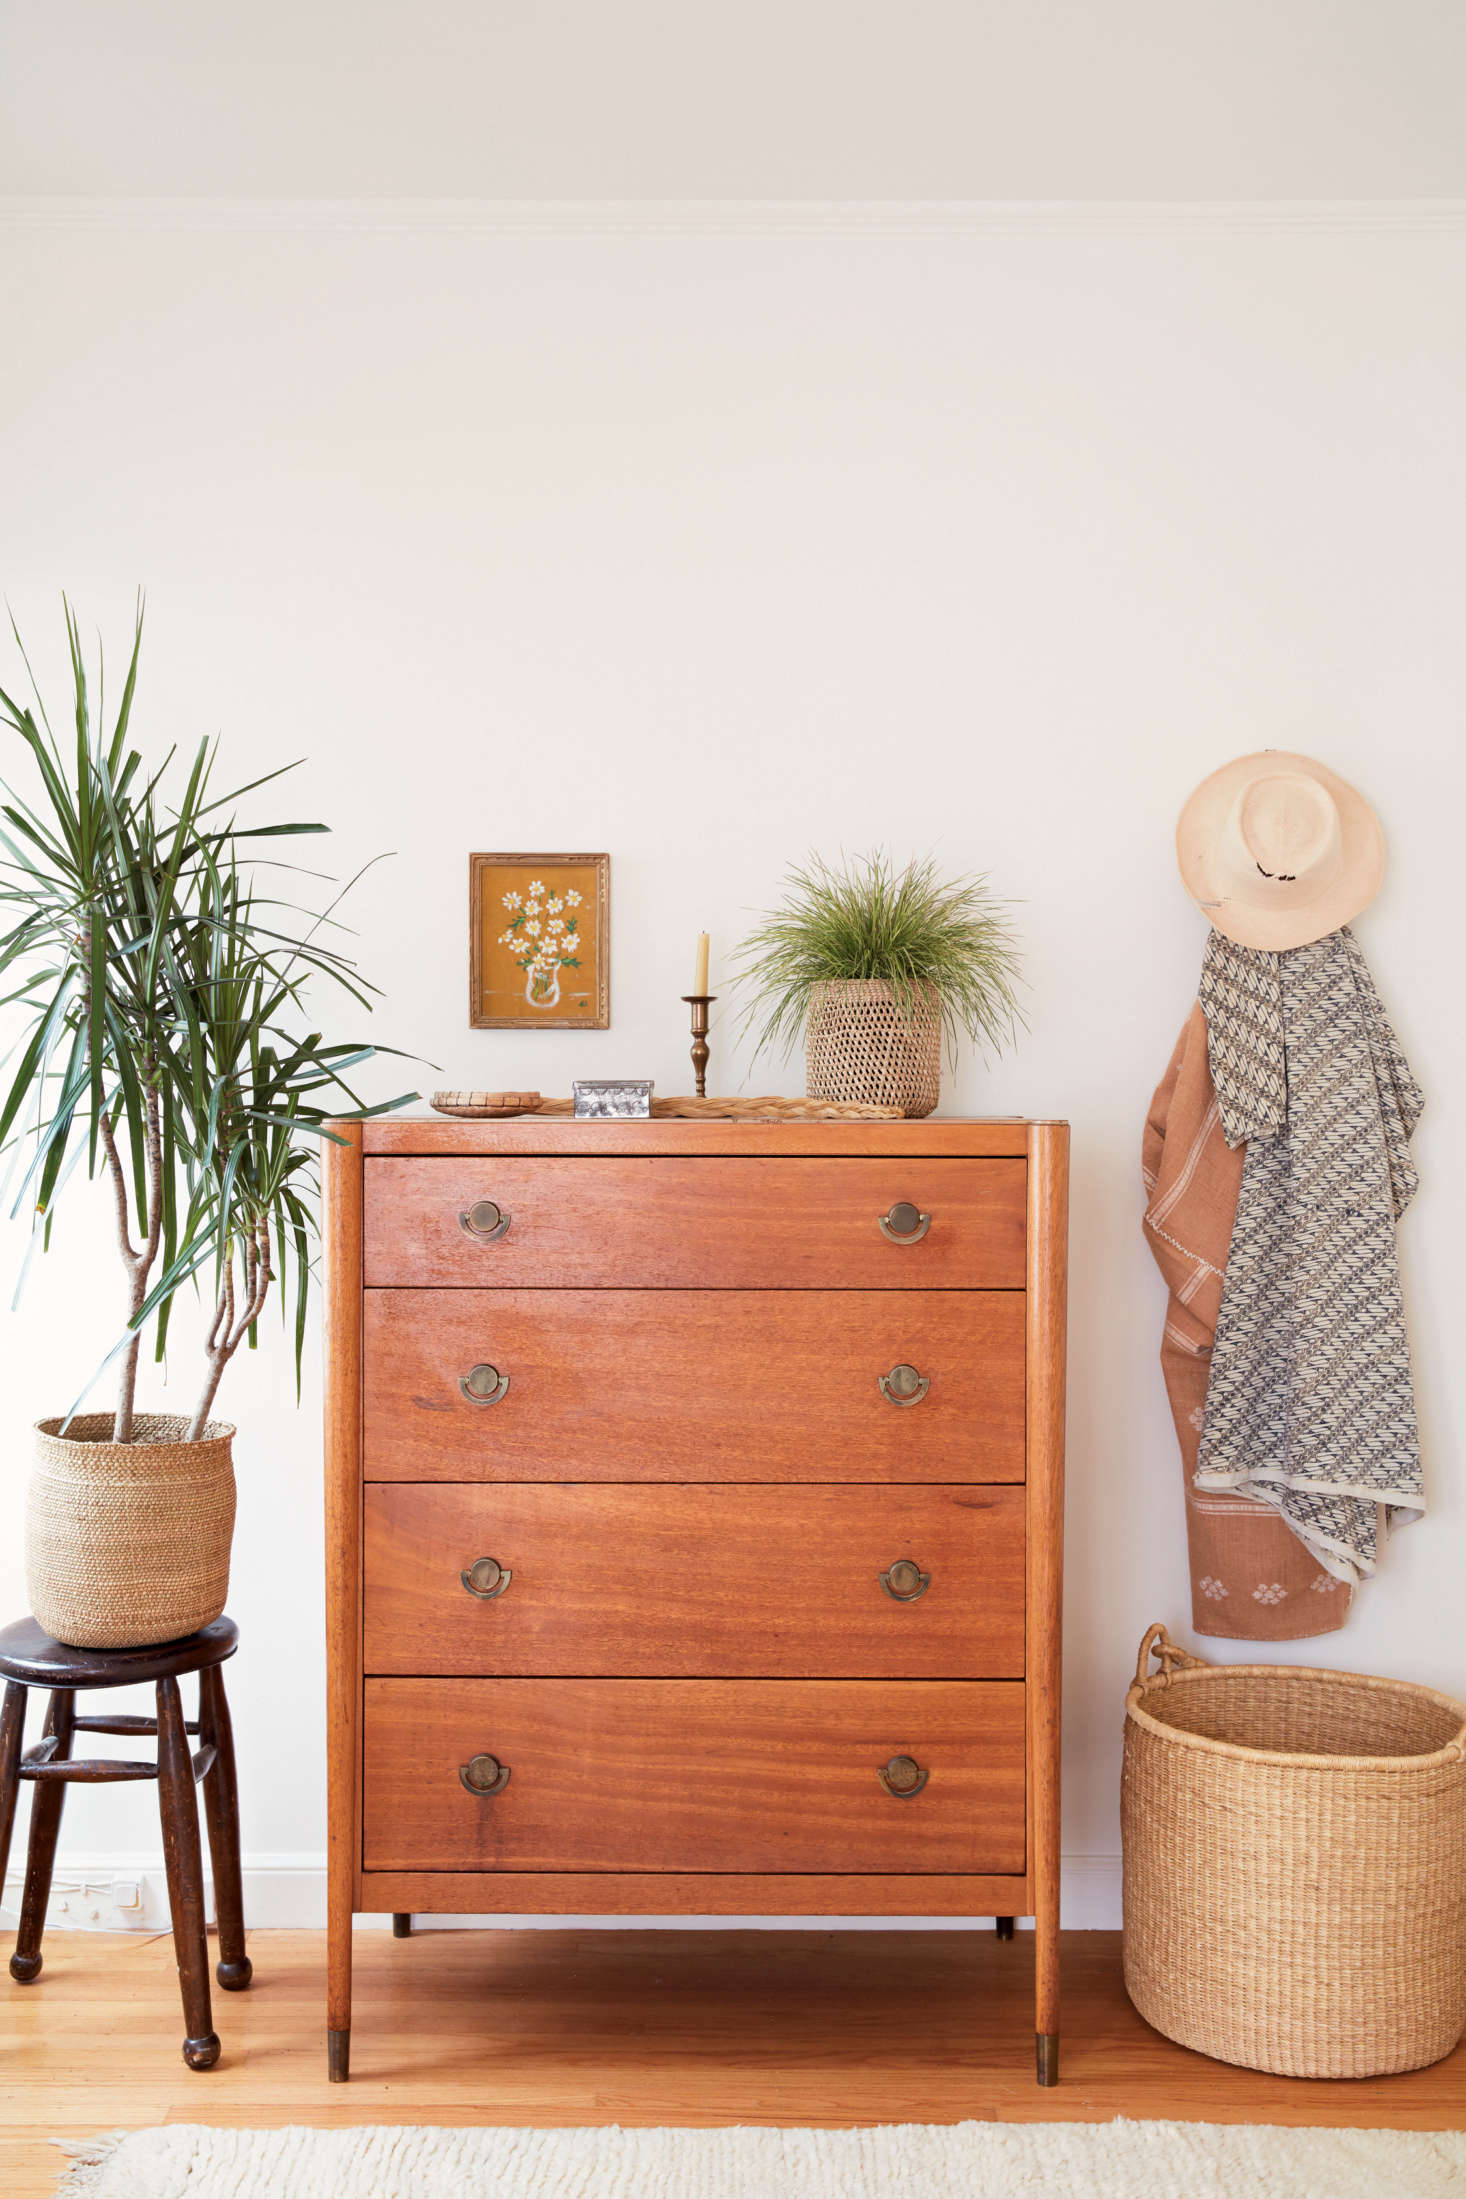 From the section on Nesting: a meditation on how, and from where, to source furniture, like this dresser, recently found at a flea market. It&#8